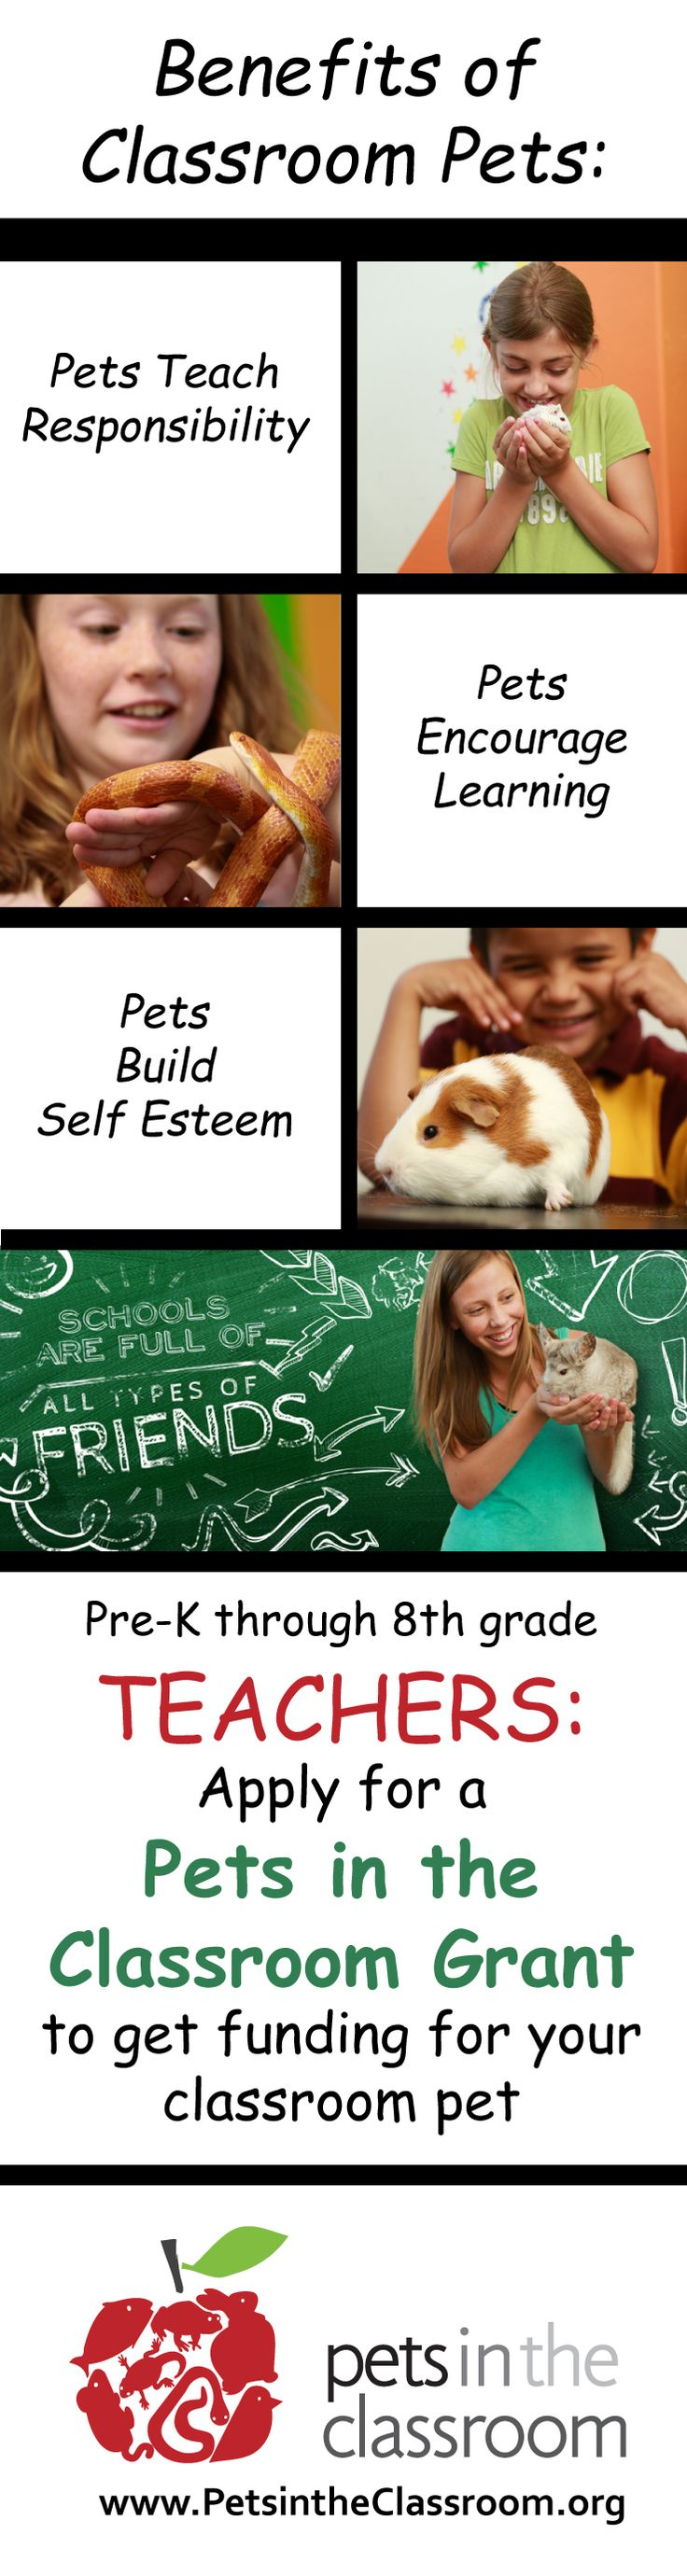 """This is awesome! """"There are numerous benefits to classroom pets.  They bring many new ways to learn, enrich the classroom experience, and can make students excited for school.  Plus they do so much more!  Learn more about the benefits of classroom pets and how you can get a grant to have your own pet in the classroom!""""    #classroompet #teachergrant #teachers"""